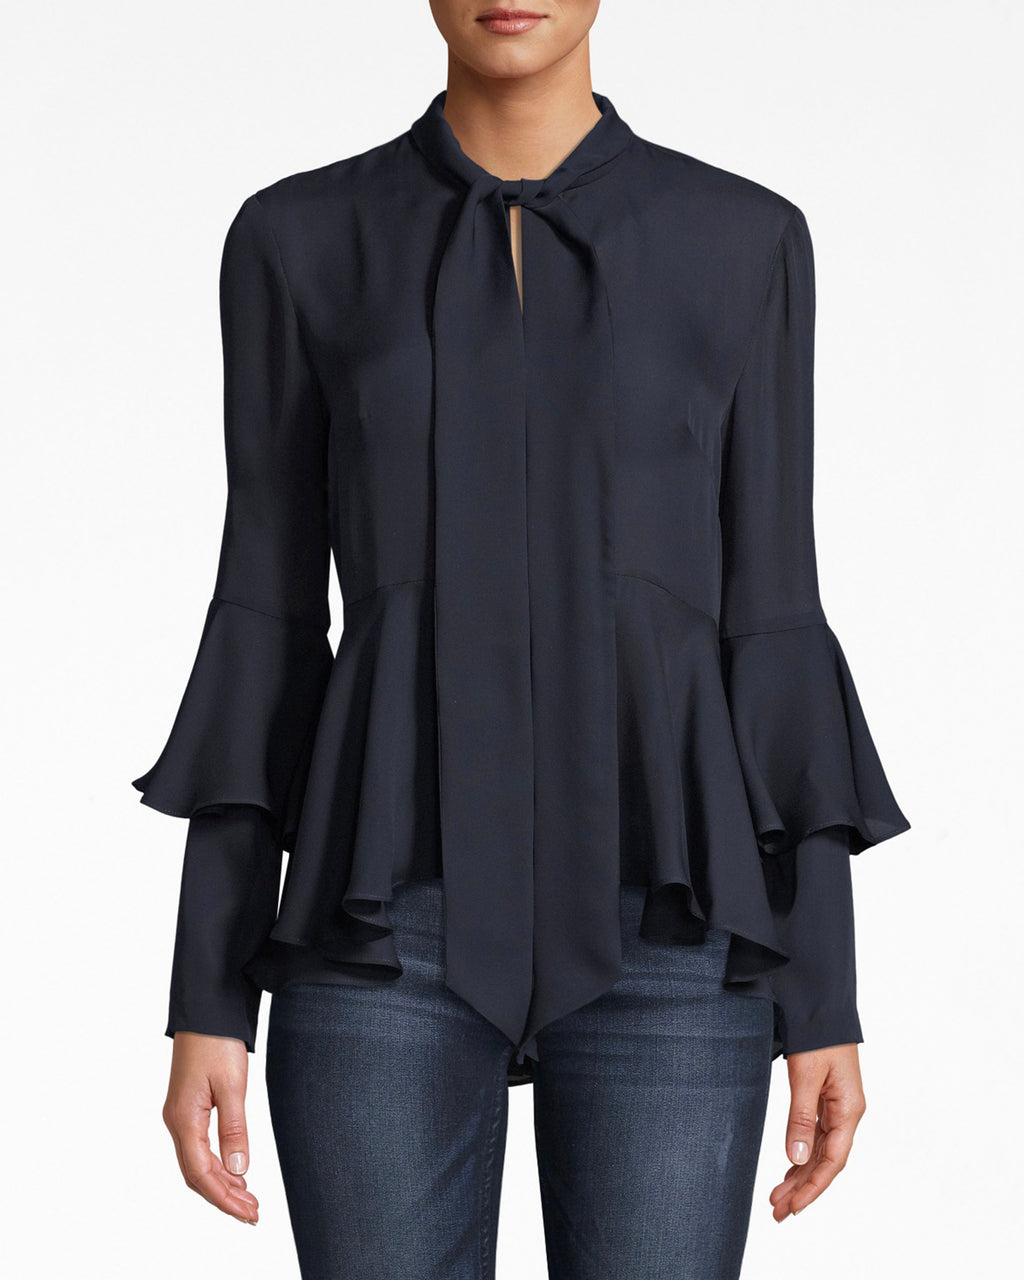 BH10482 - SILK TIE NECK BLOUSE - tops - blouses - Creating shapes. The body and arm pleating on this tie neck blouse adds easy movement. Pair with denim or dress pants.